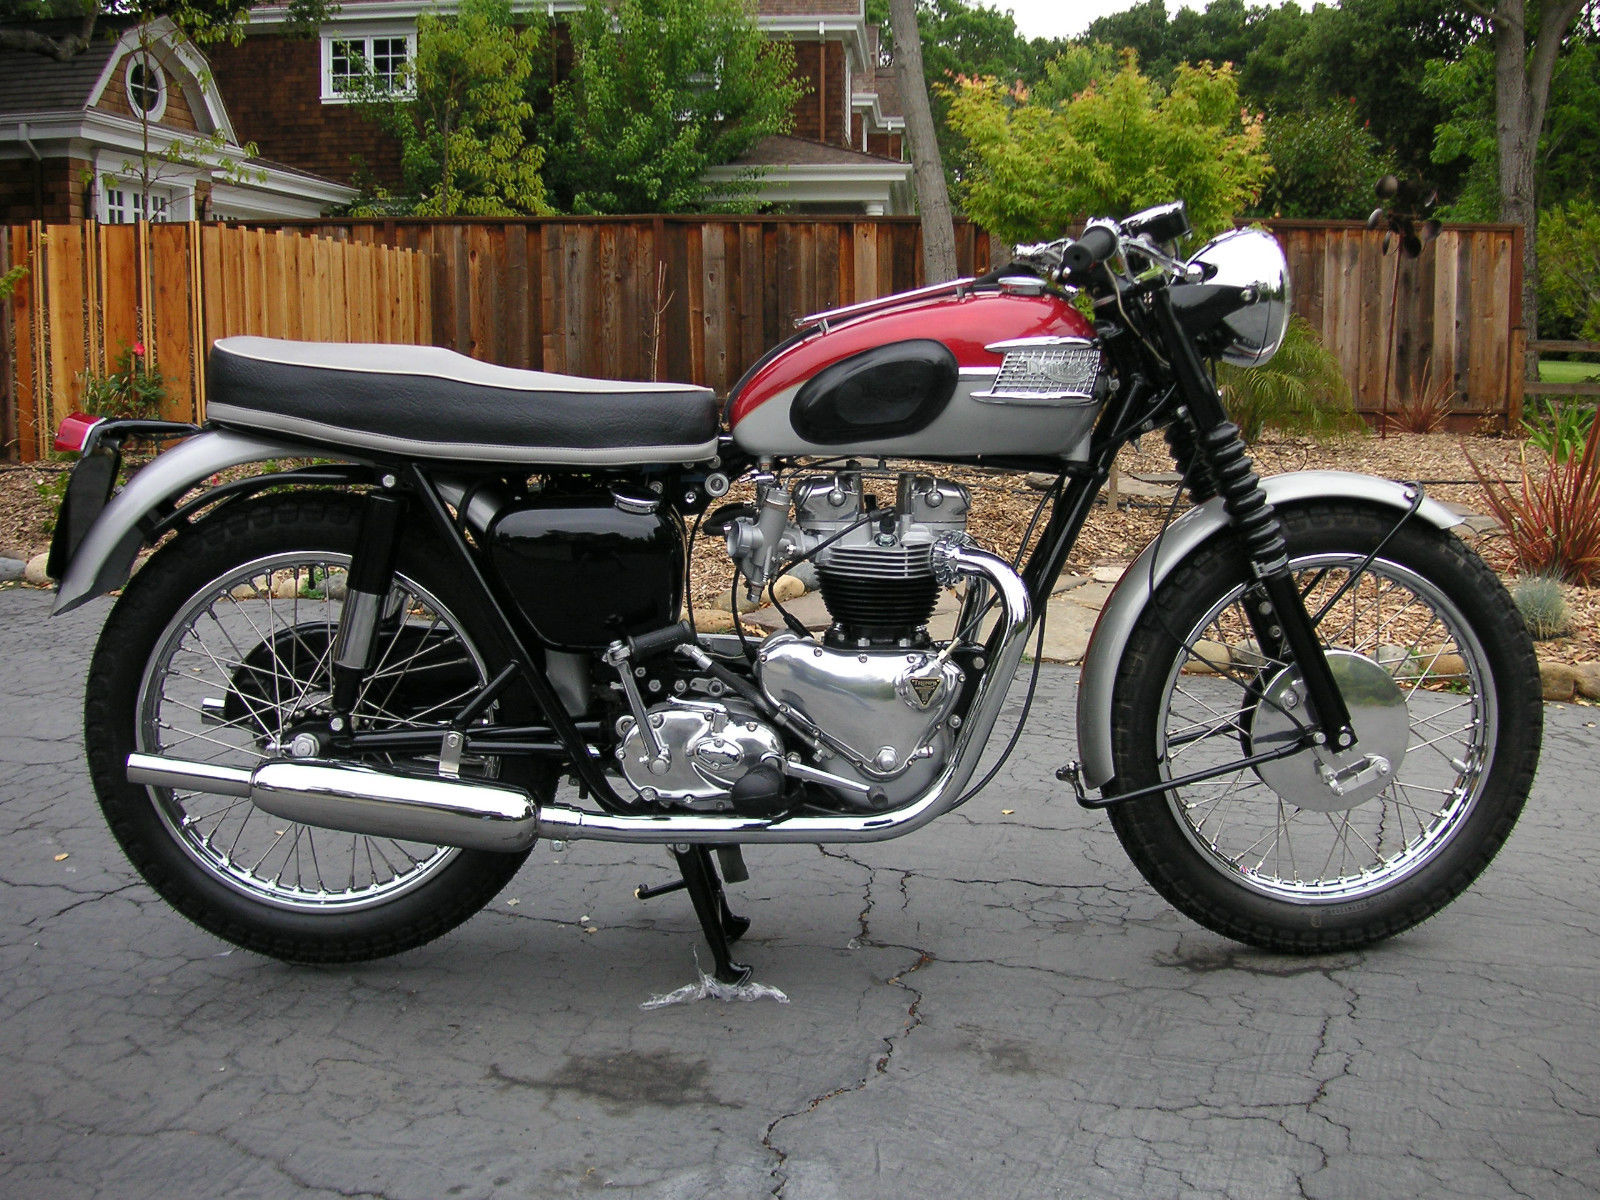 Restored Triumph Bonneville 1962 Photographs At Classic